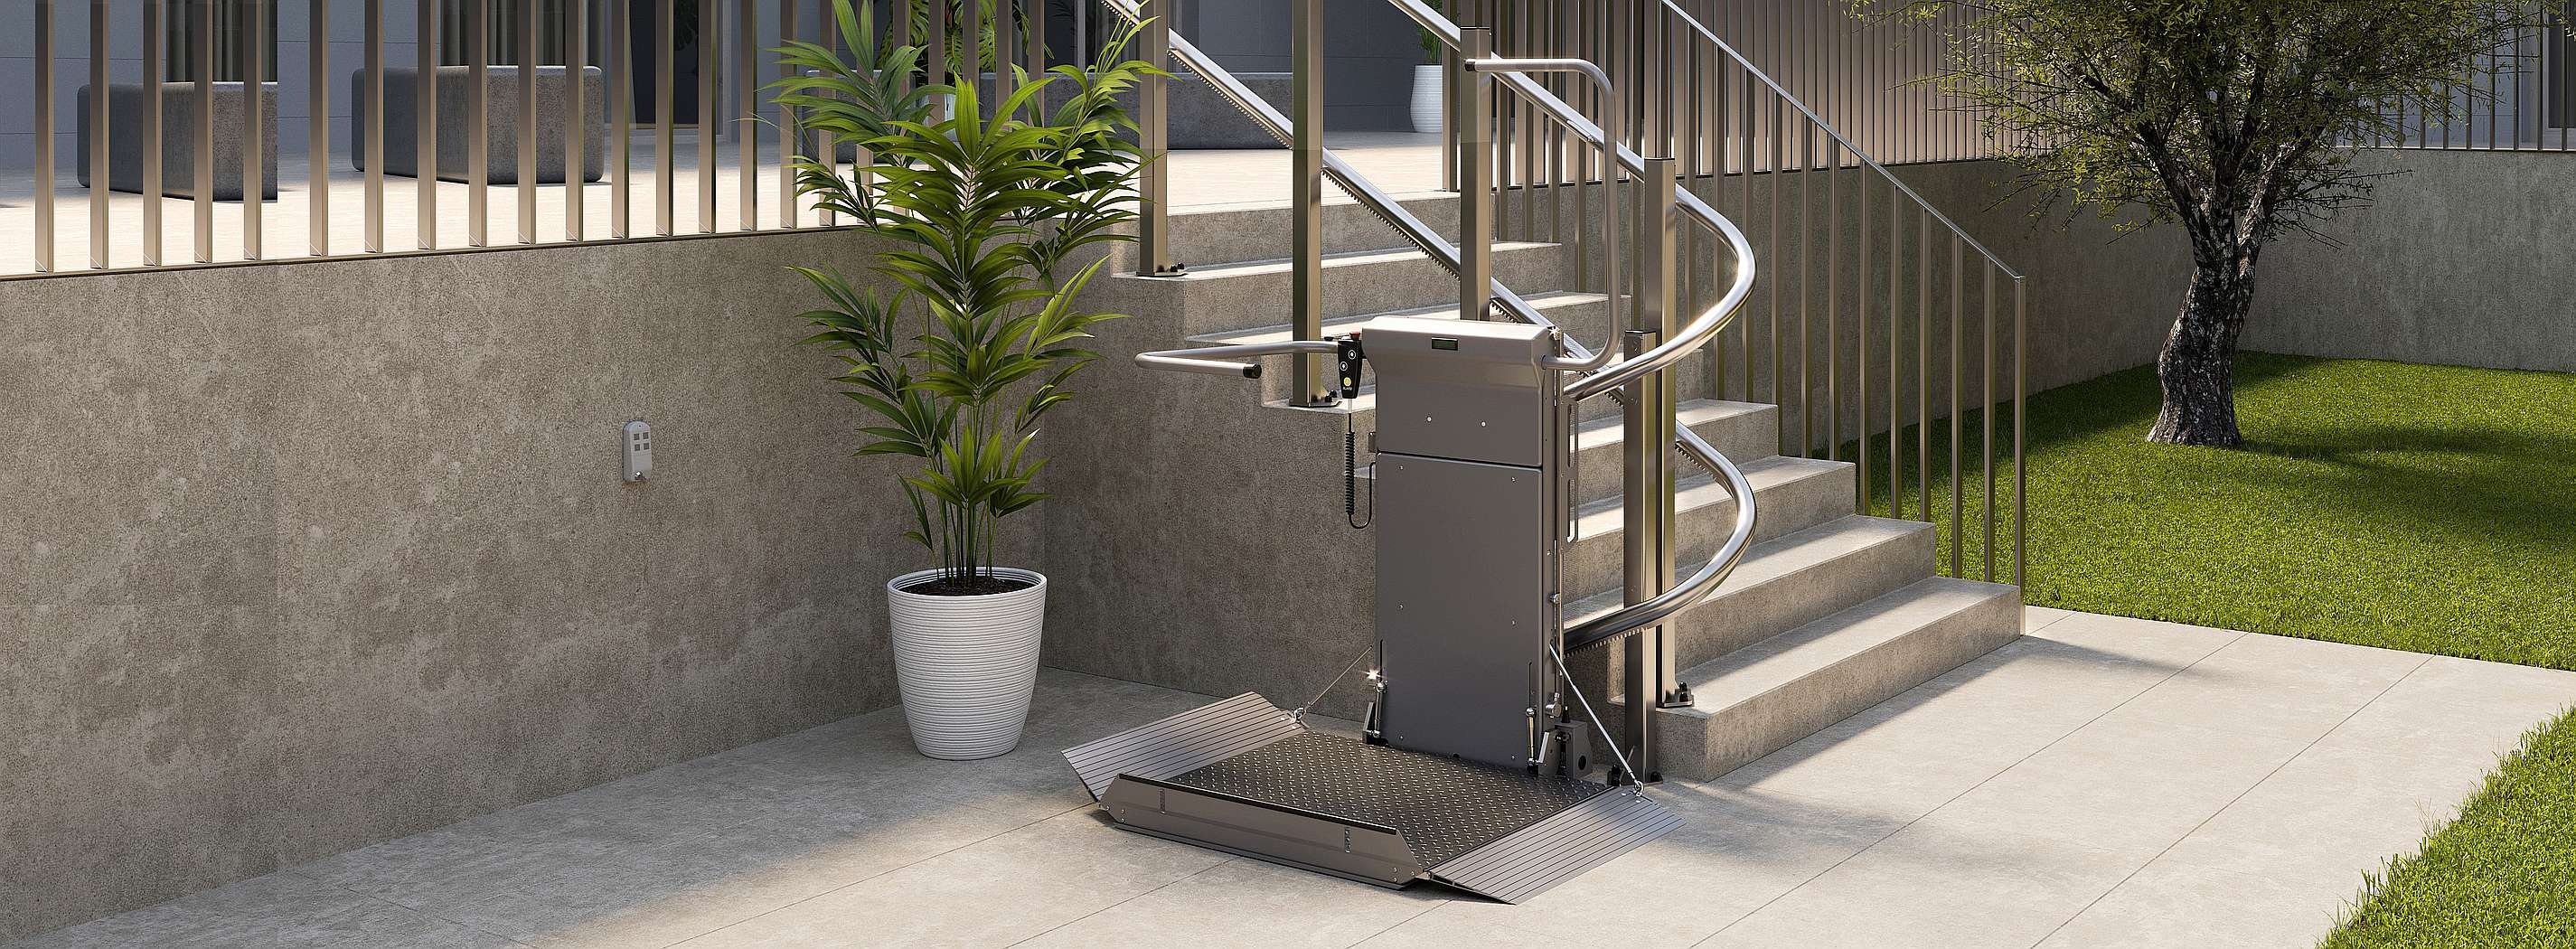 Stratos platform stairlift for wheelchair in public spaces